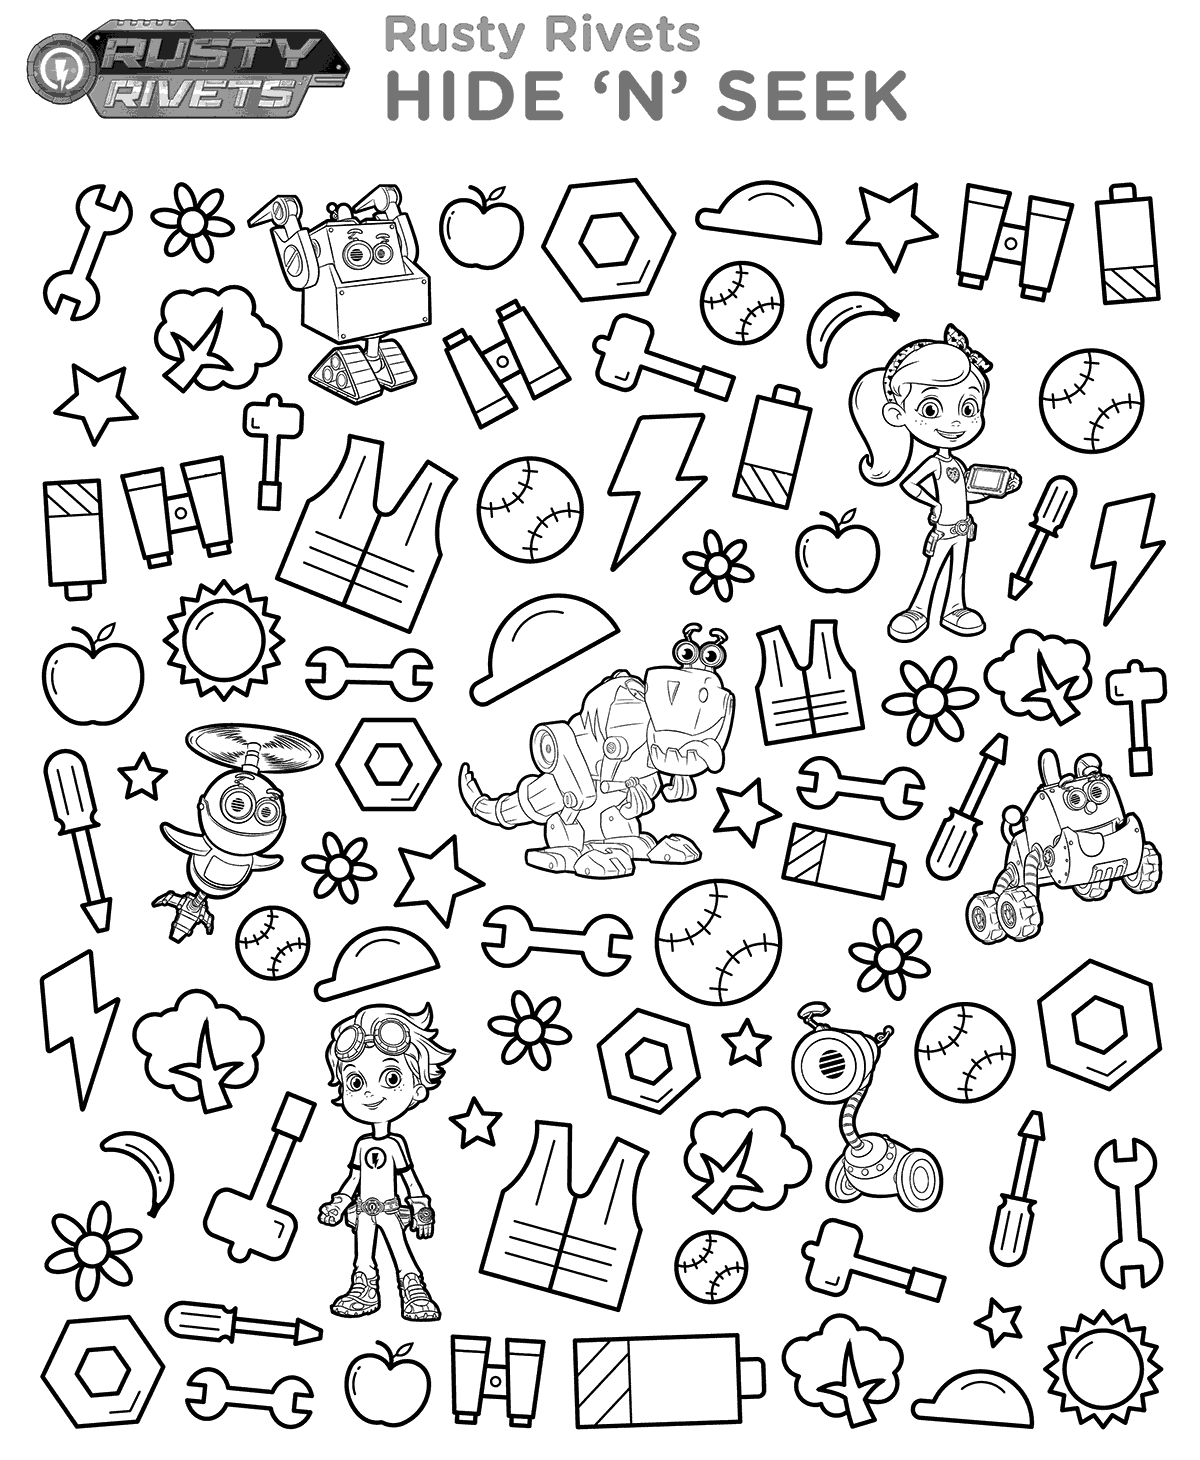 Nick Jr Rusty Rivets Hide N Seek Printable Coloring Page